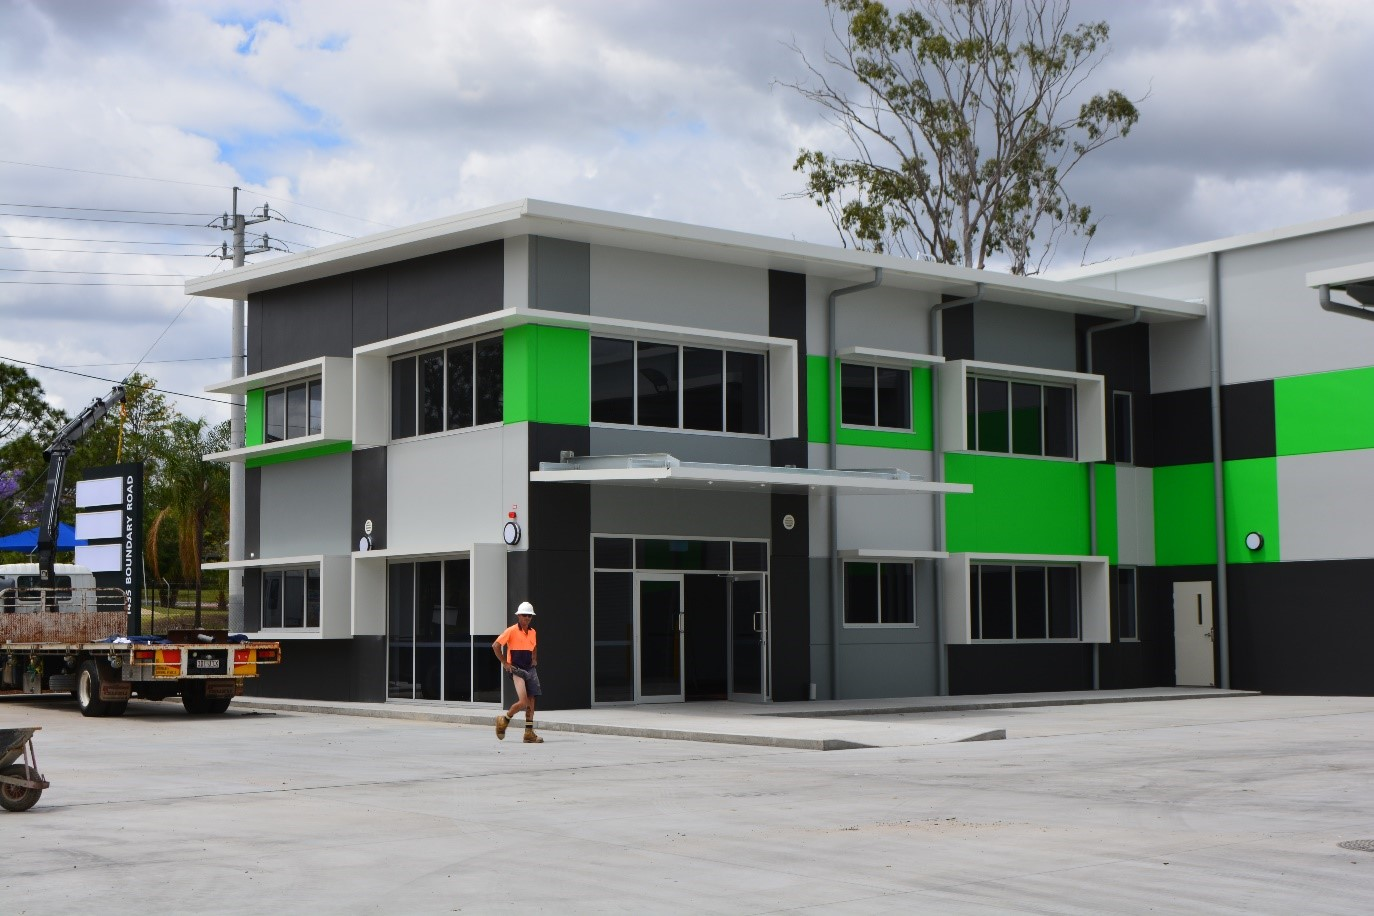 Retracom Group Sunshades And Awnings For Commercial Premises At Wacol